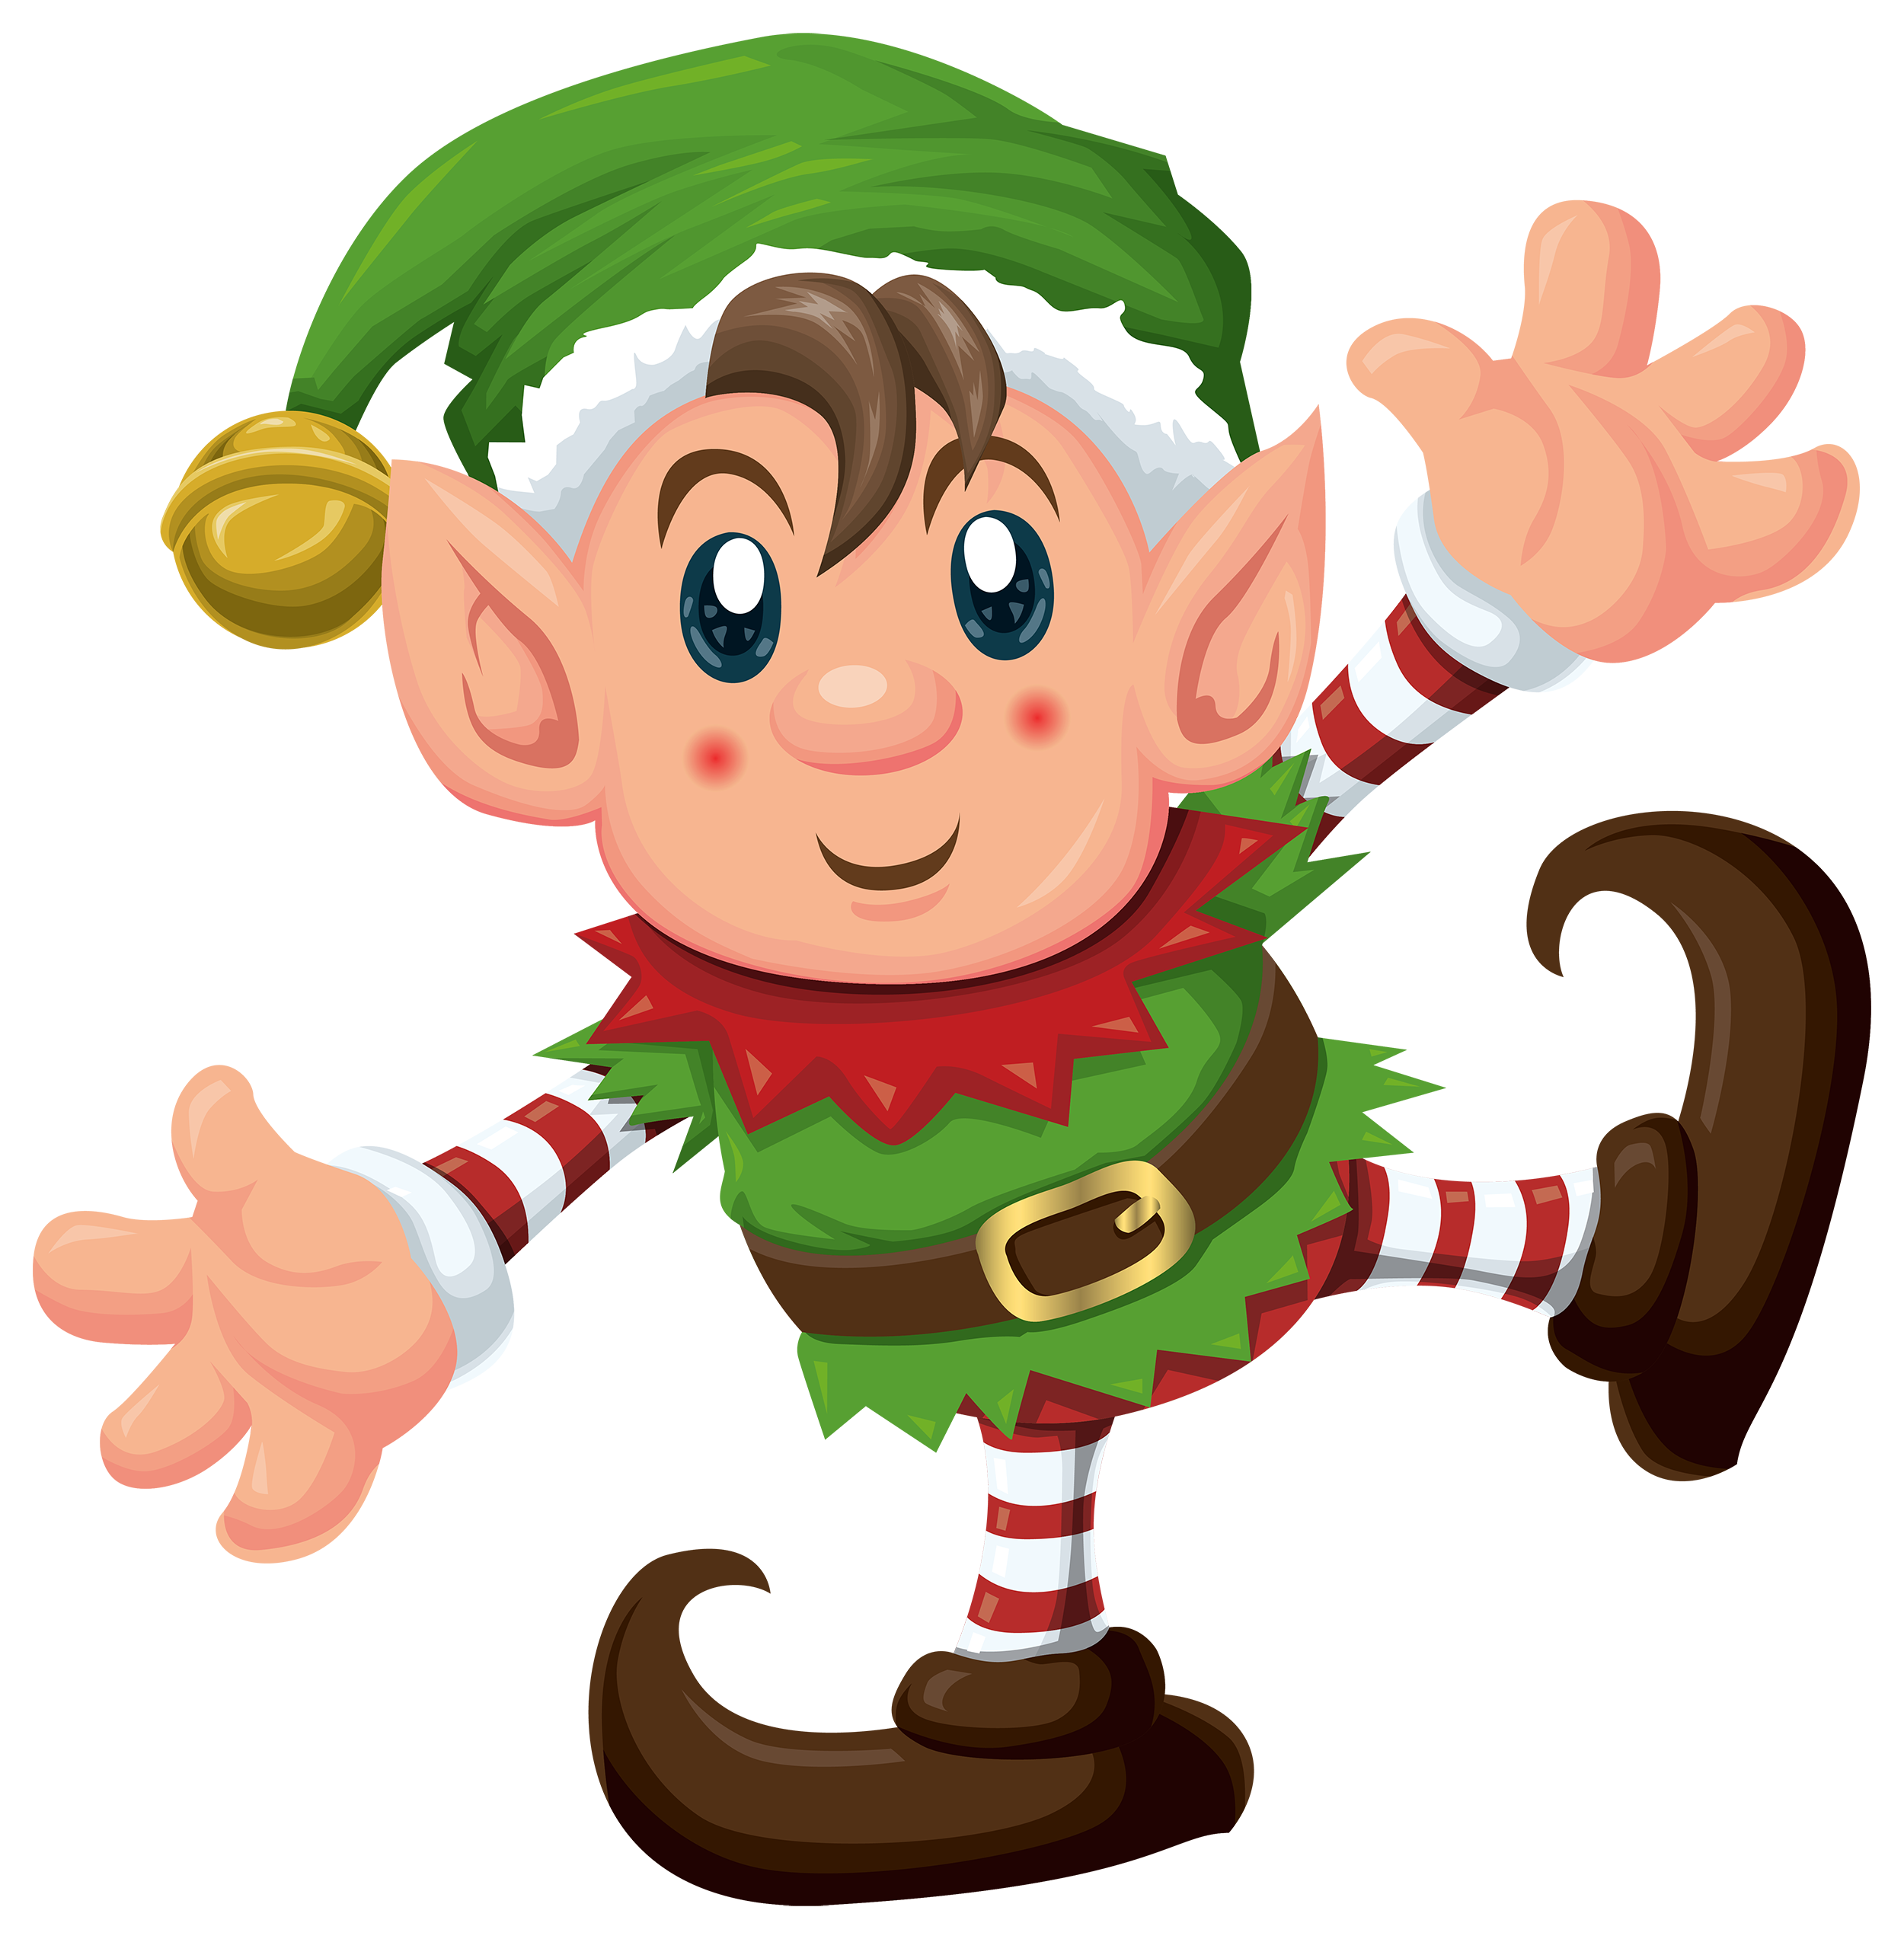 Elf clipart adorable. Graphics group cute png